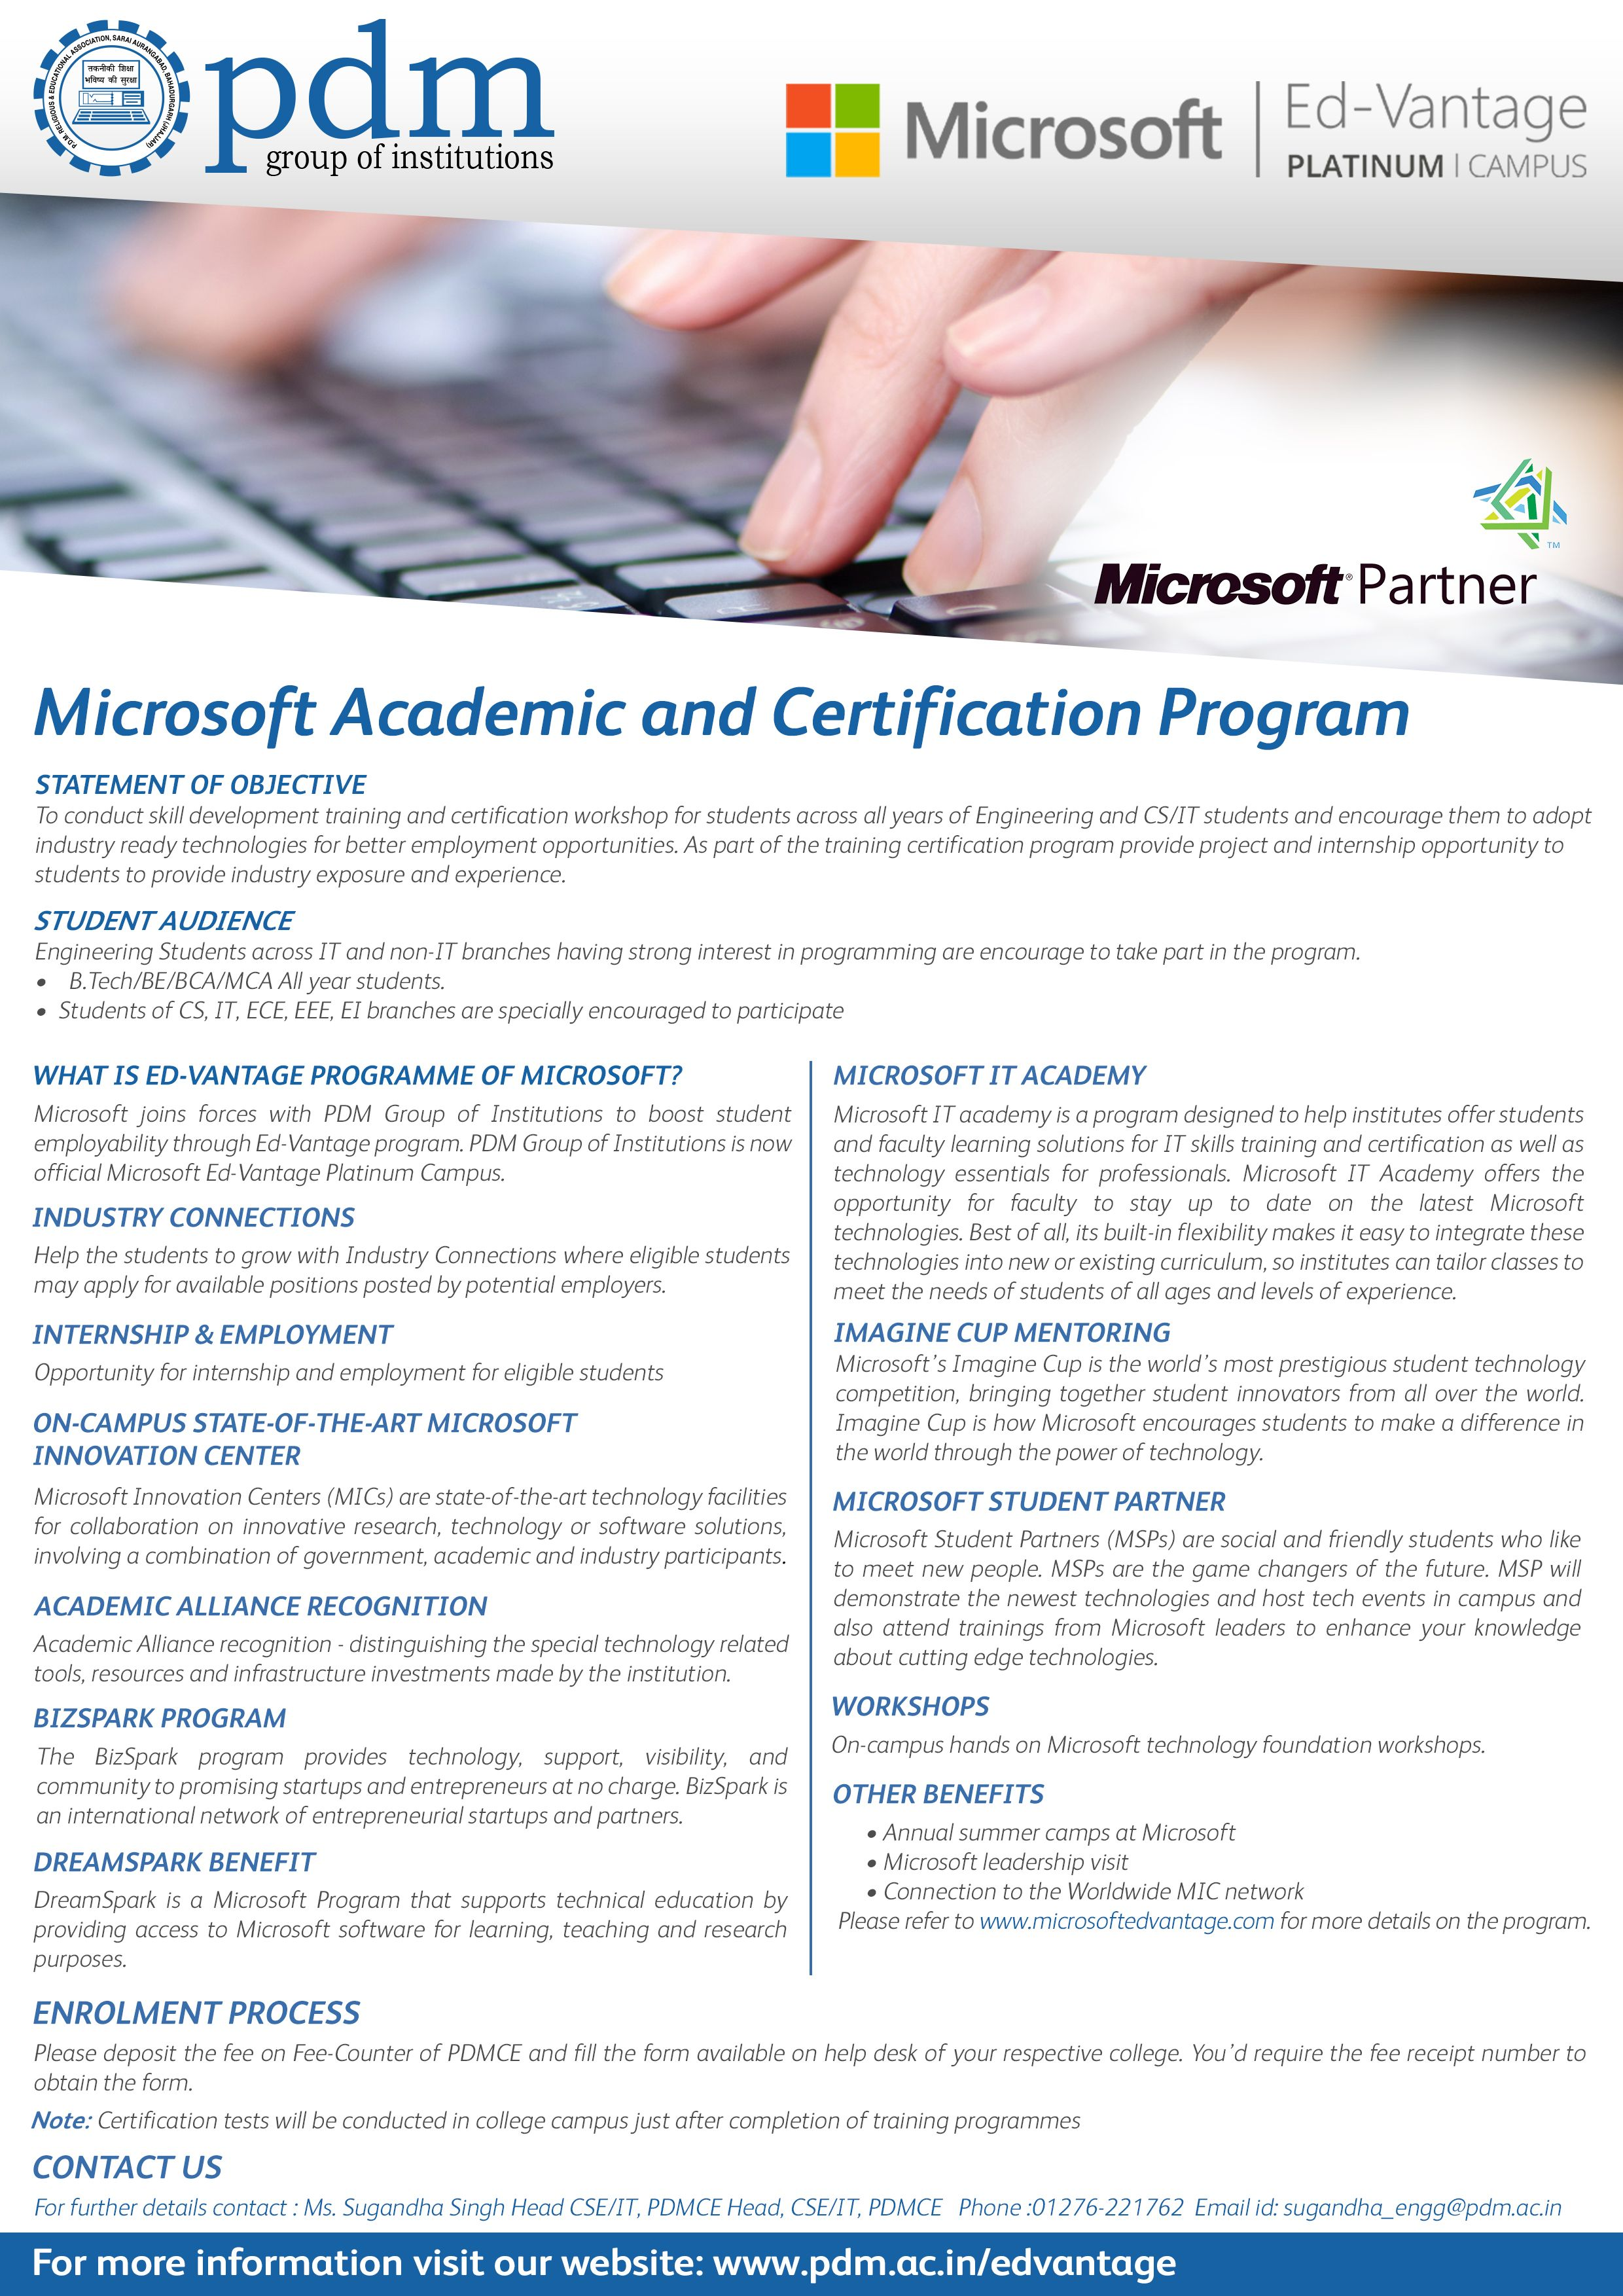 Pdm group of institutions microsoft academic and certification pdm group of institutions microsoft academic and certification program poster 2014 pdm pinterest 1betcityfo Images